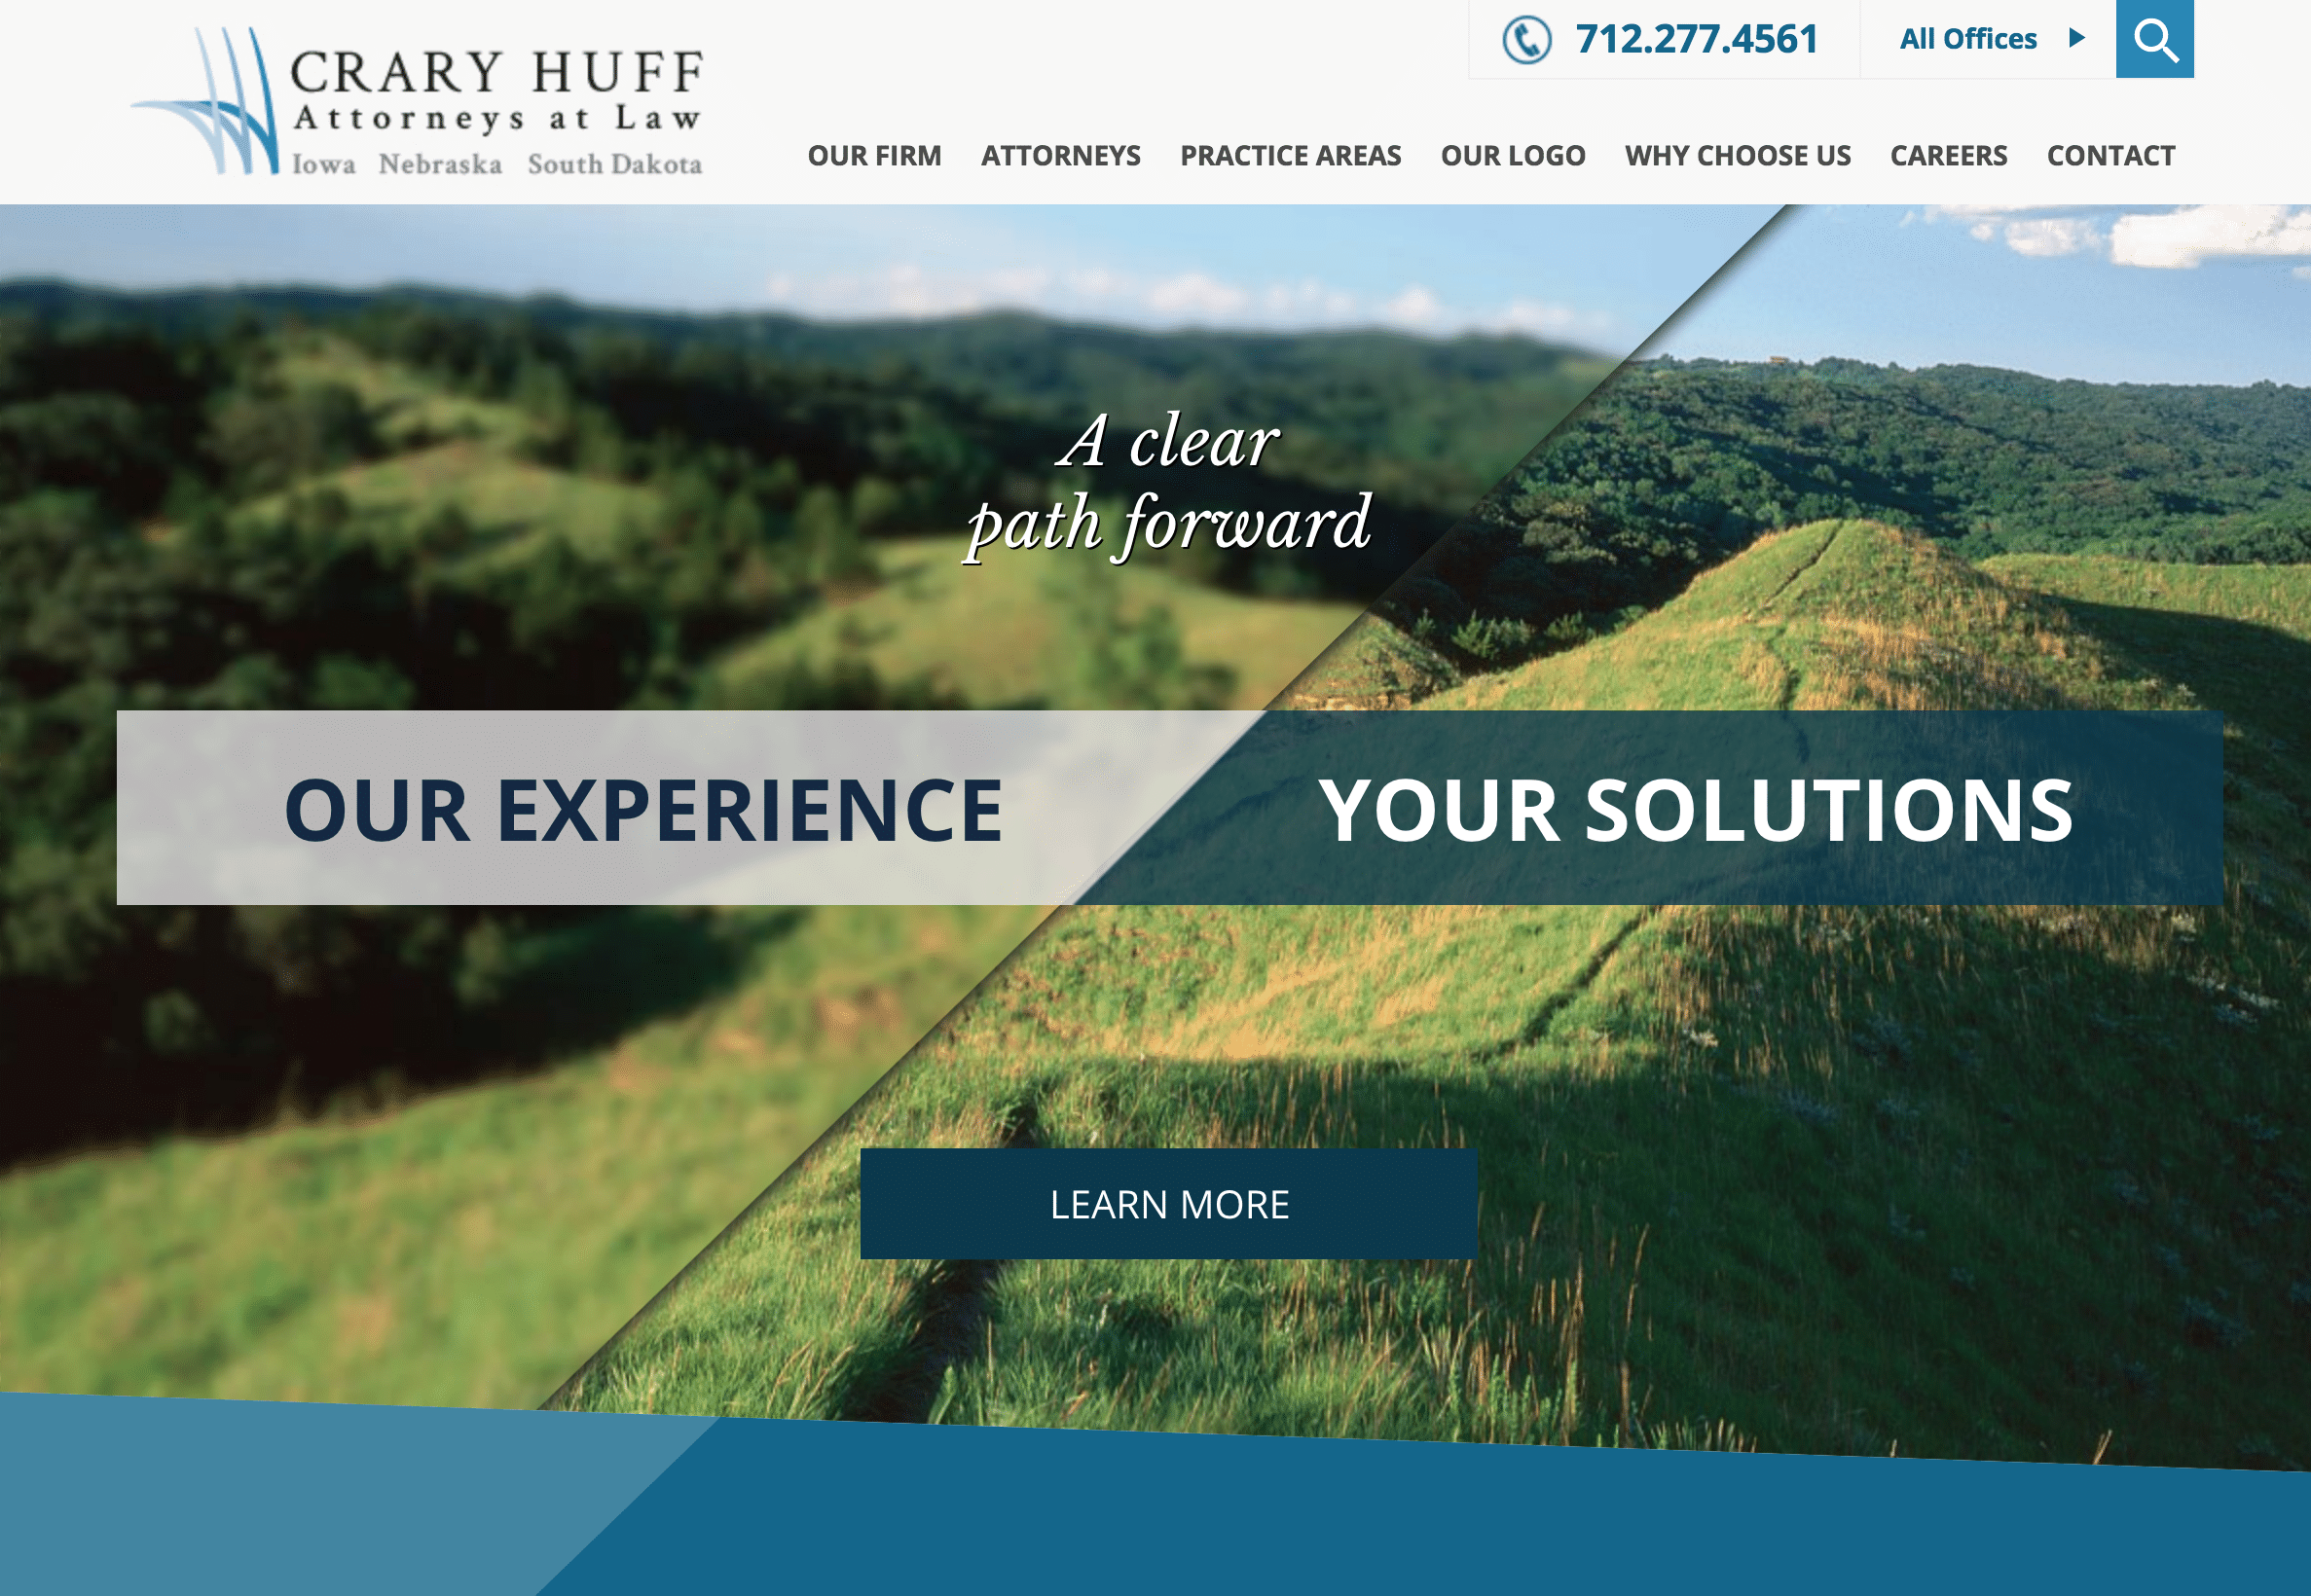 Crary Huff Attorneys at Law